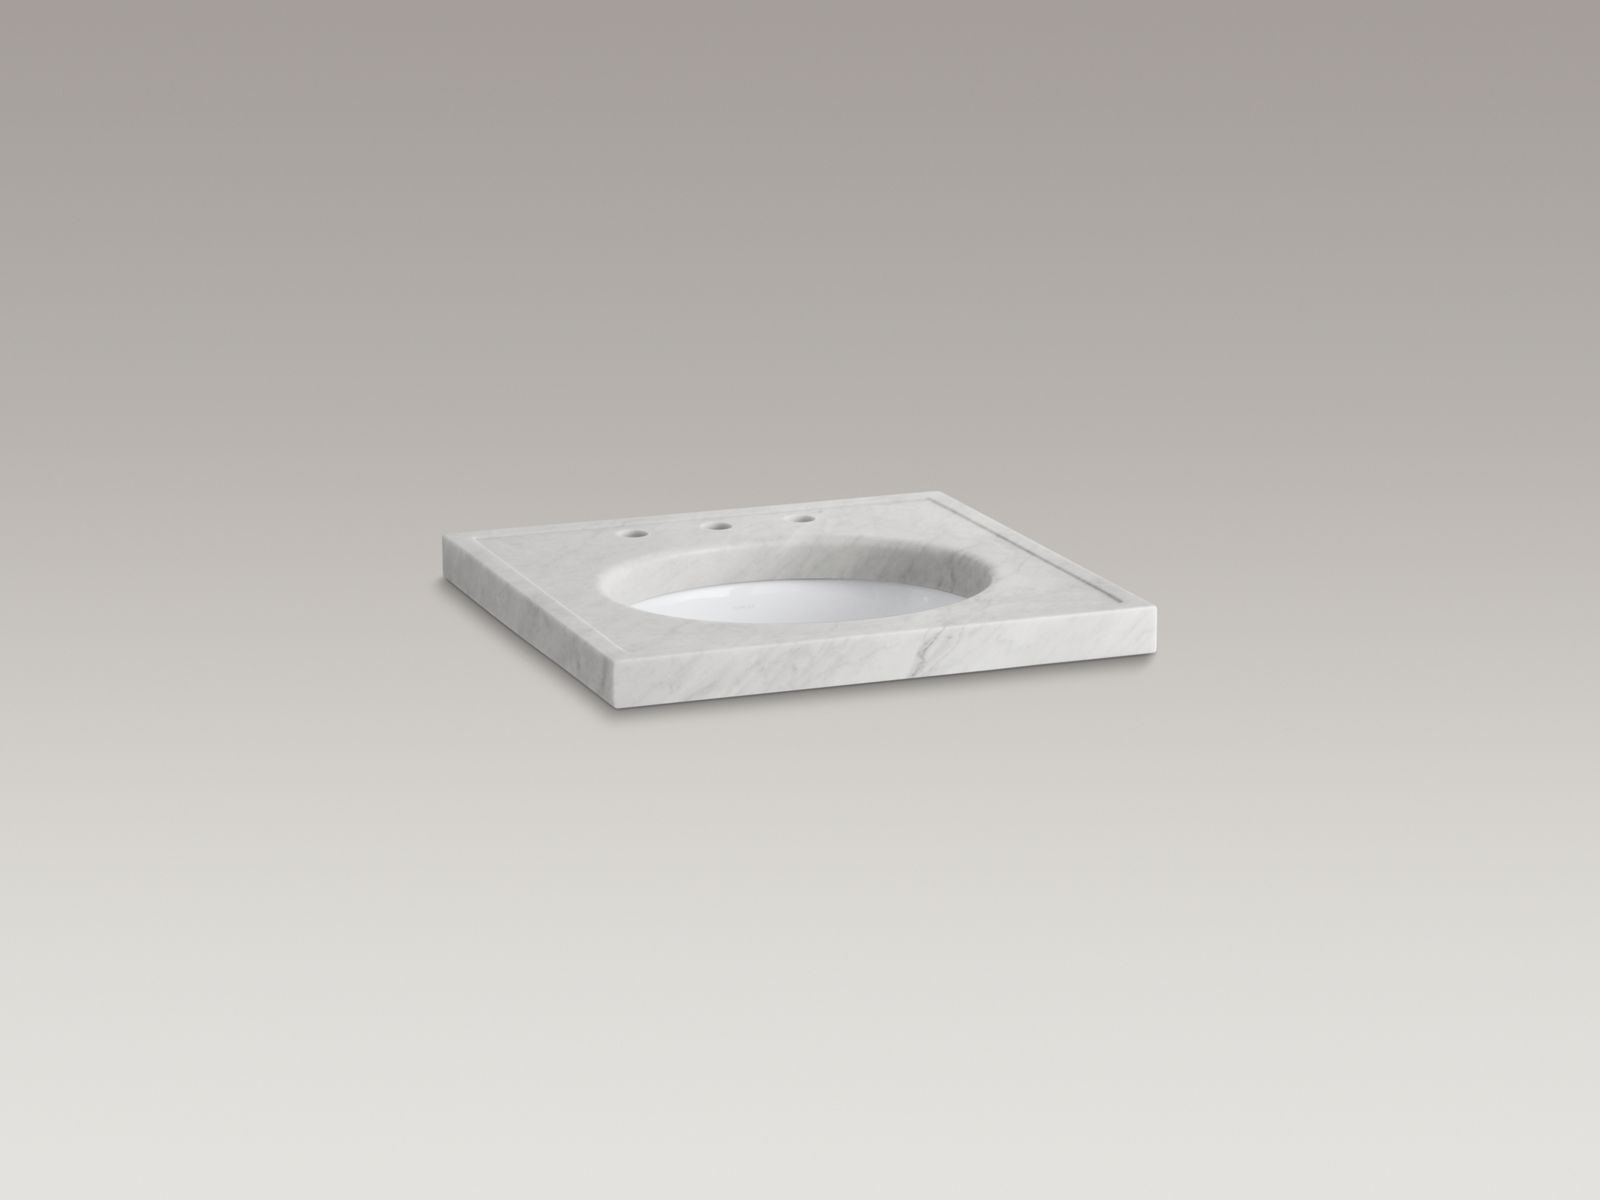 Shown with Caxton® lavatory K-2210-G-0 and standard pop-up drain, not included.